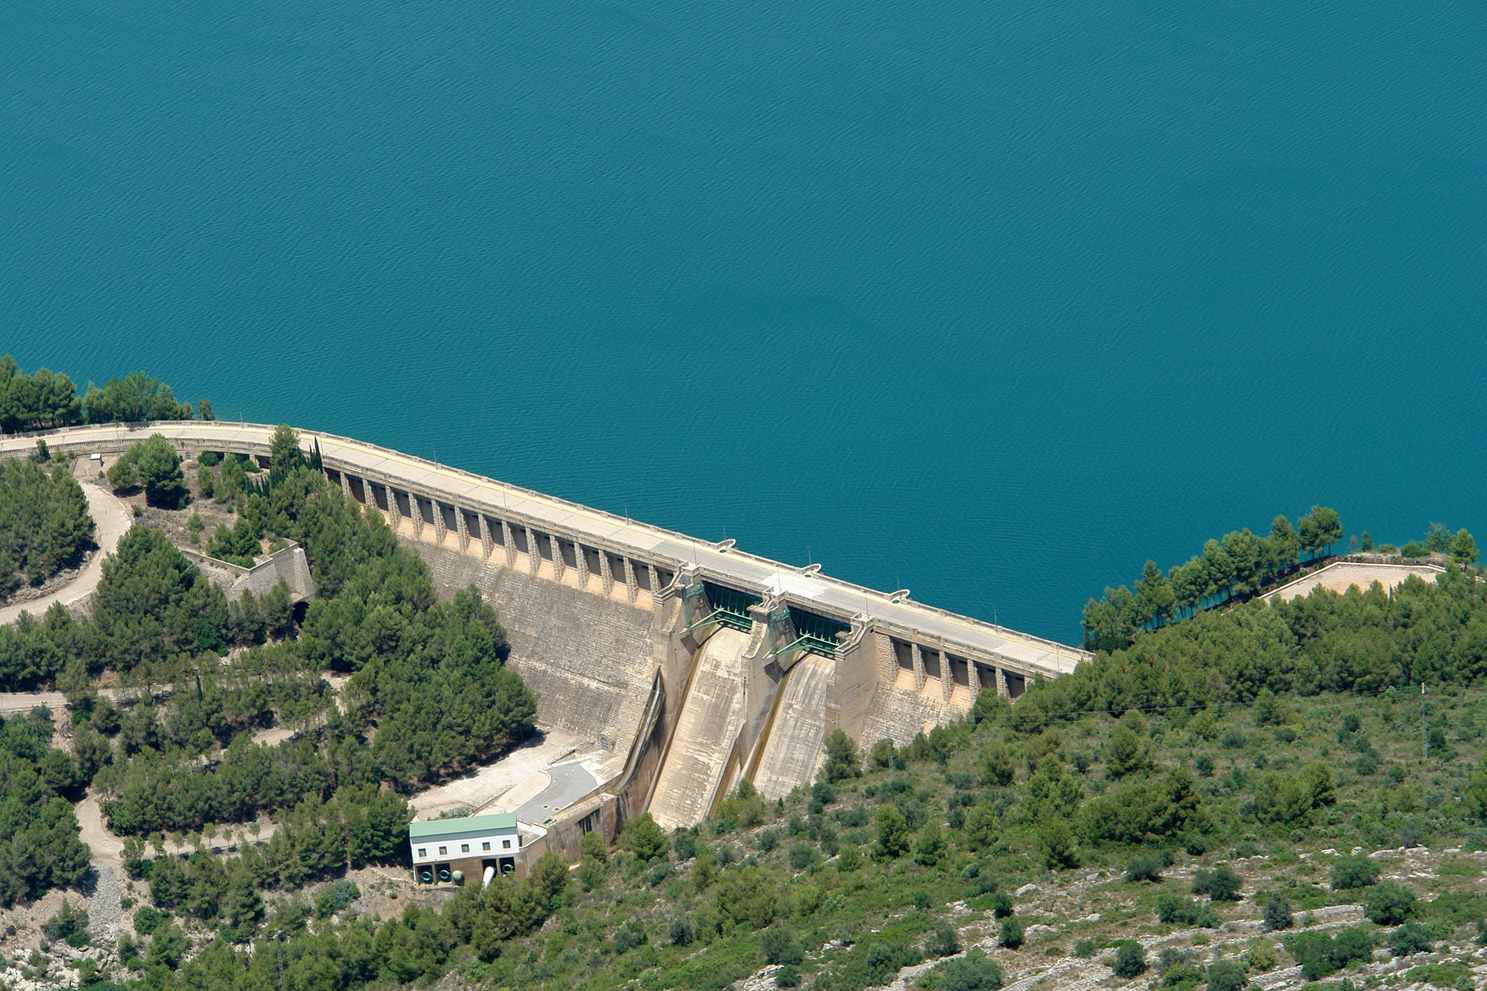 https://zeppeline.es/wp-content/uploads/2015/09/vista-aerea-de-embalse-video-fotografia-aerea-2.jpg